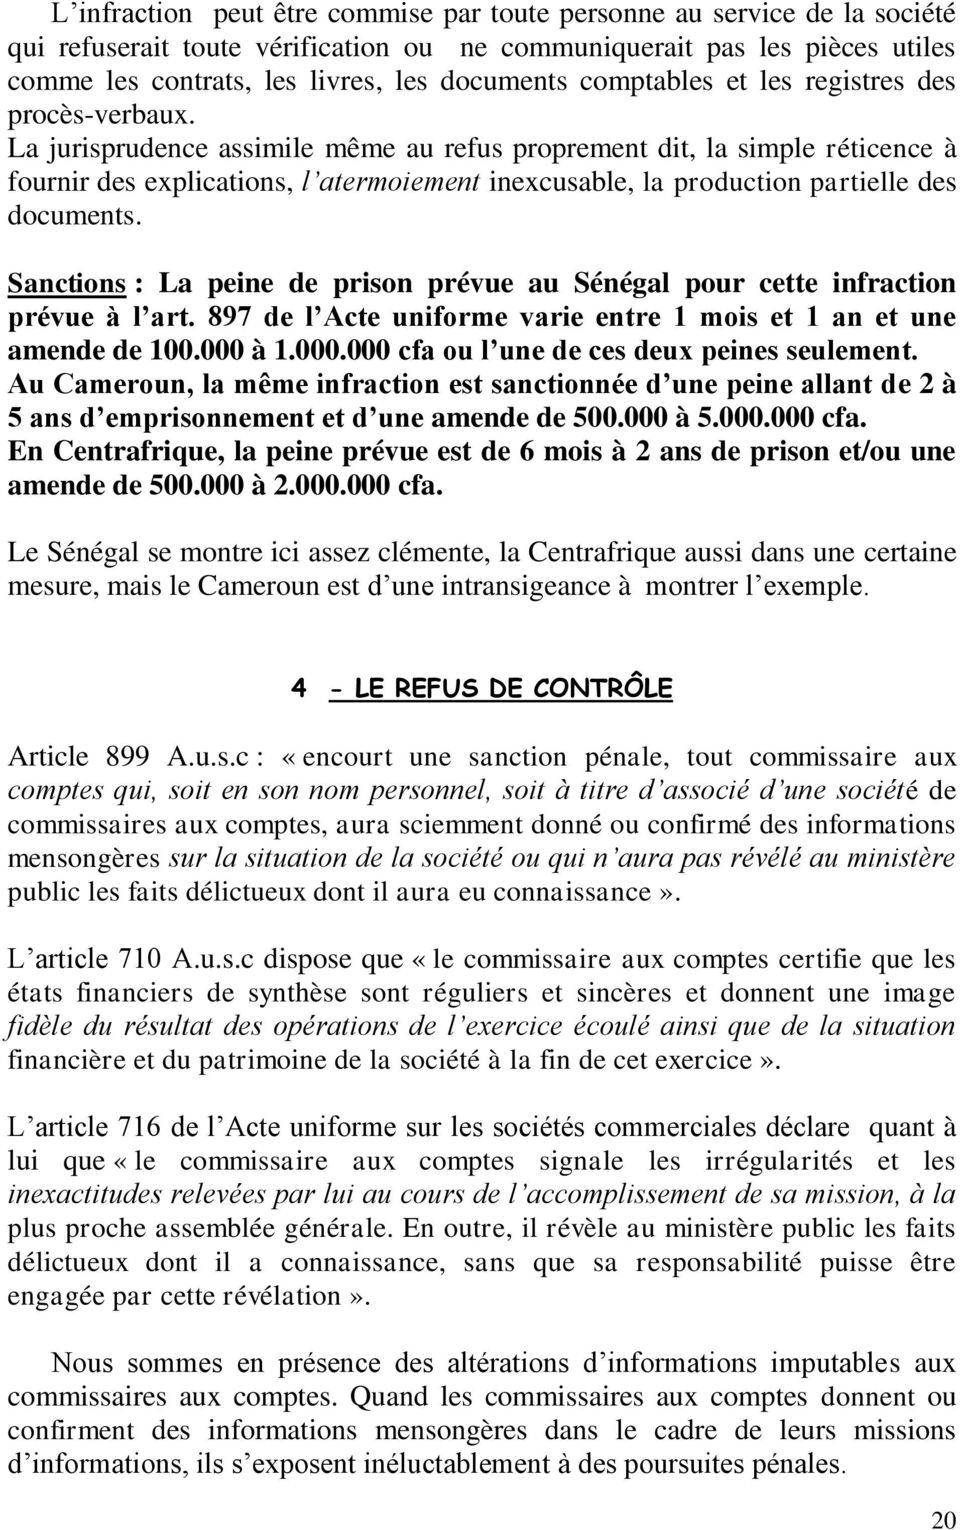 La jurisprudence assimile même au refus proprement dit, la simple réticence à fournir des explications, l atermoiement inexcusable, la production partielle des documents.